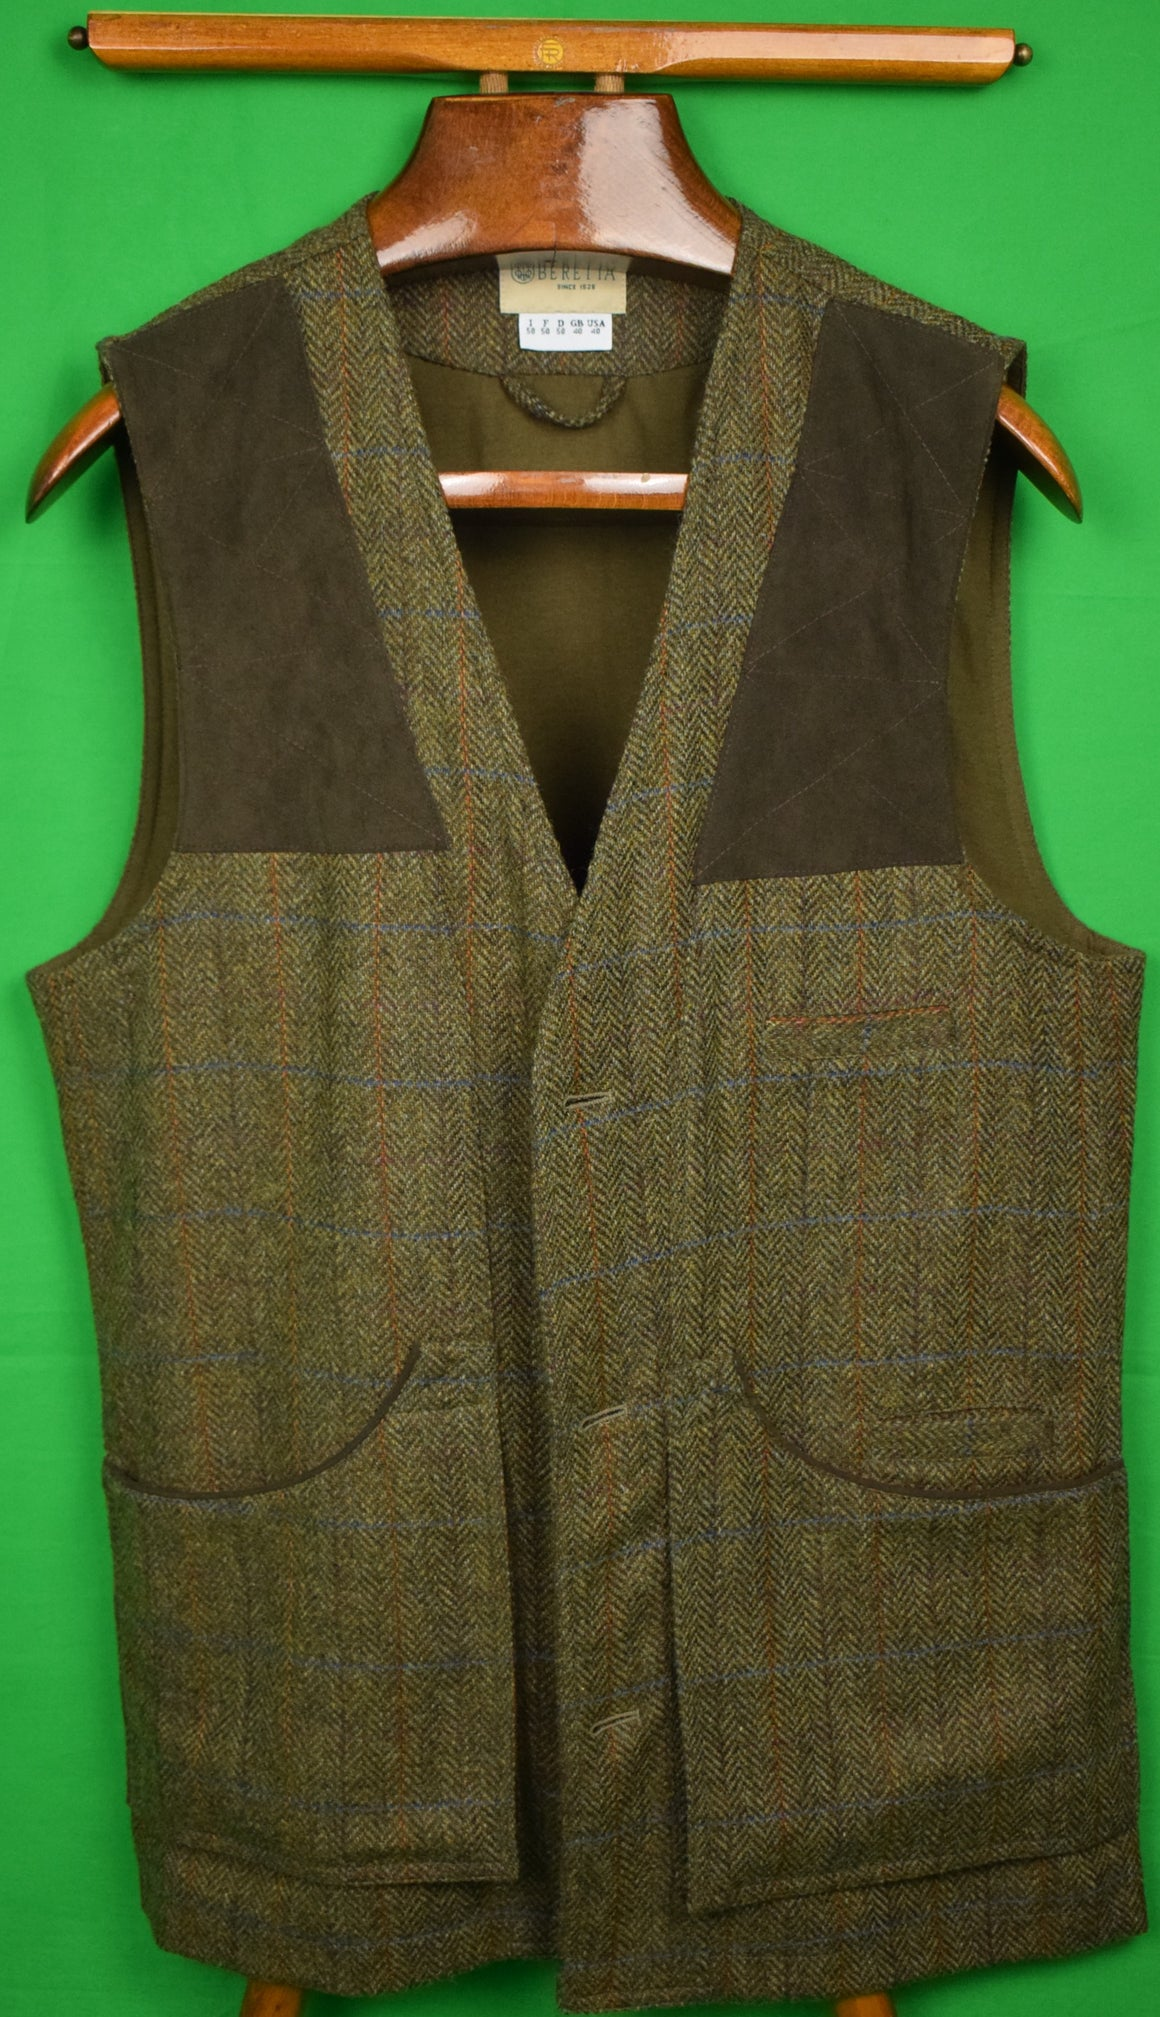 Beretta Herringbone Tweed Shooting Vest w/ Quilted Suede Shoulder Patches Sz: 40